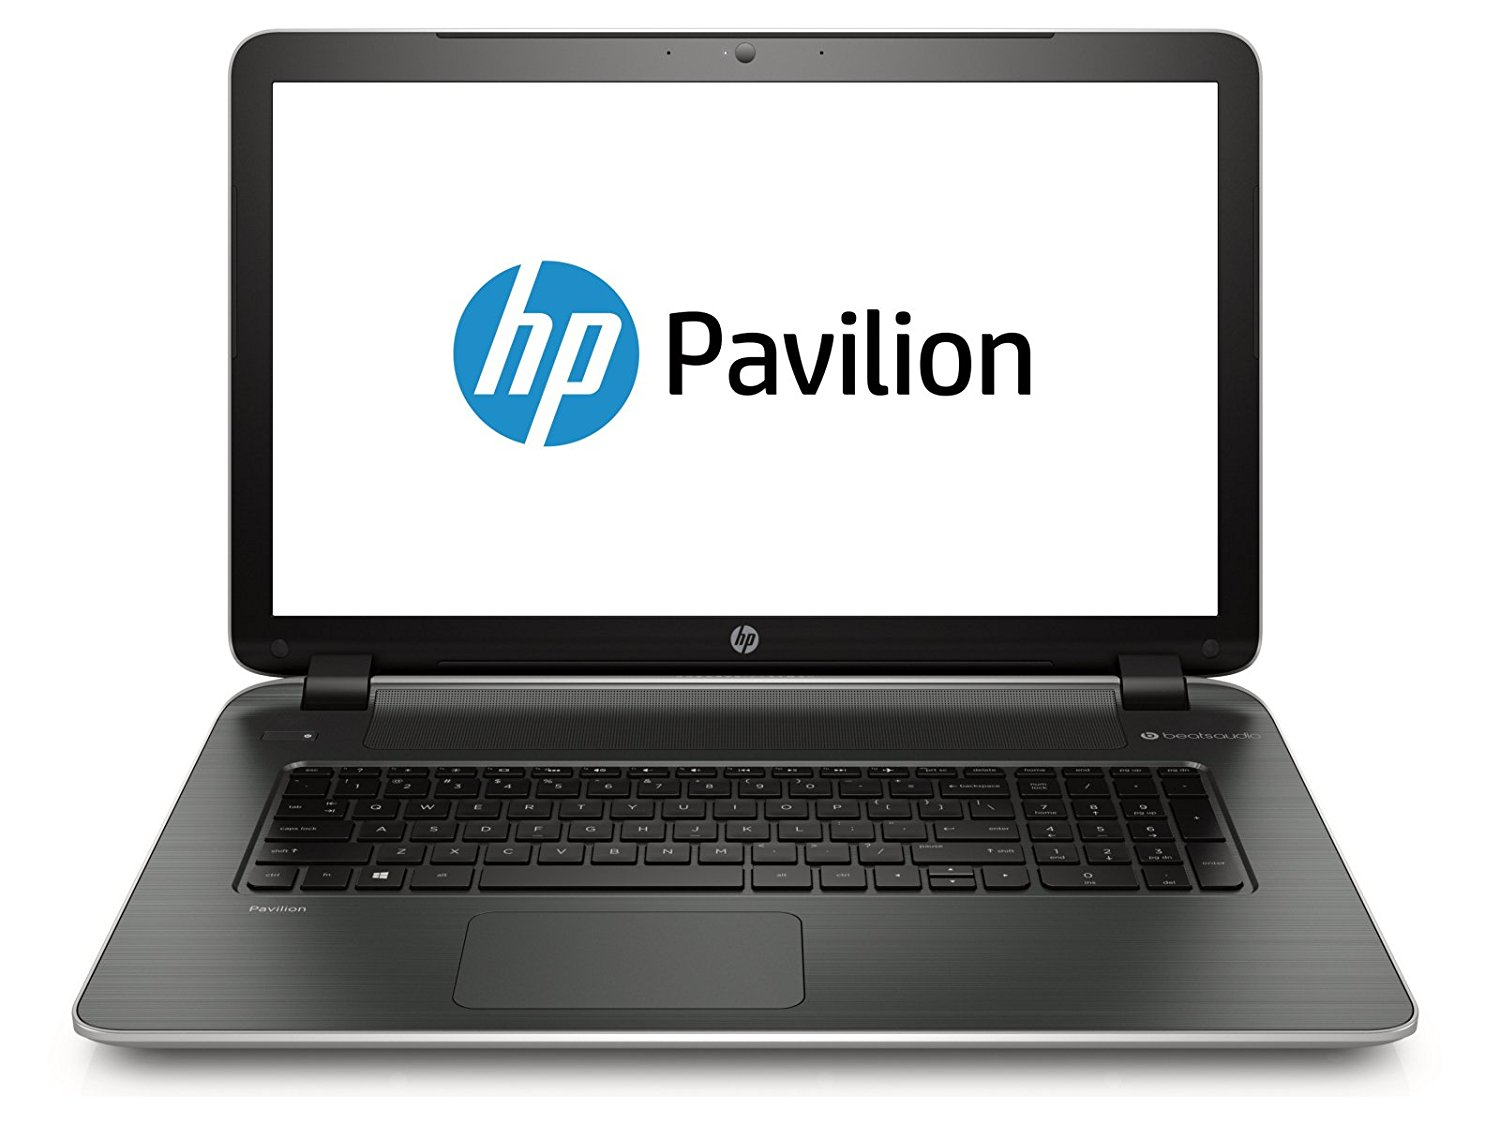 hp pavilion 17 3 laptop 1 6ghz 8gb 1tb windows 10 17. Black Bedroom Furniture Sets. Home Design Ideas